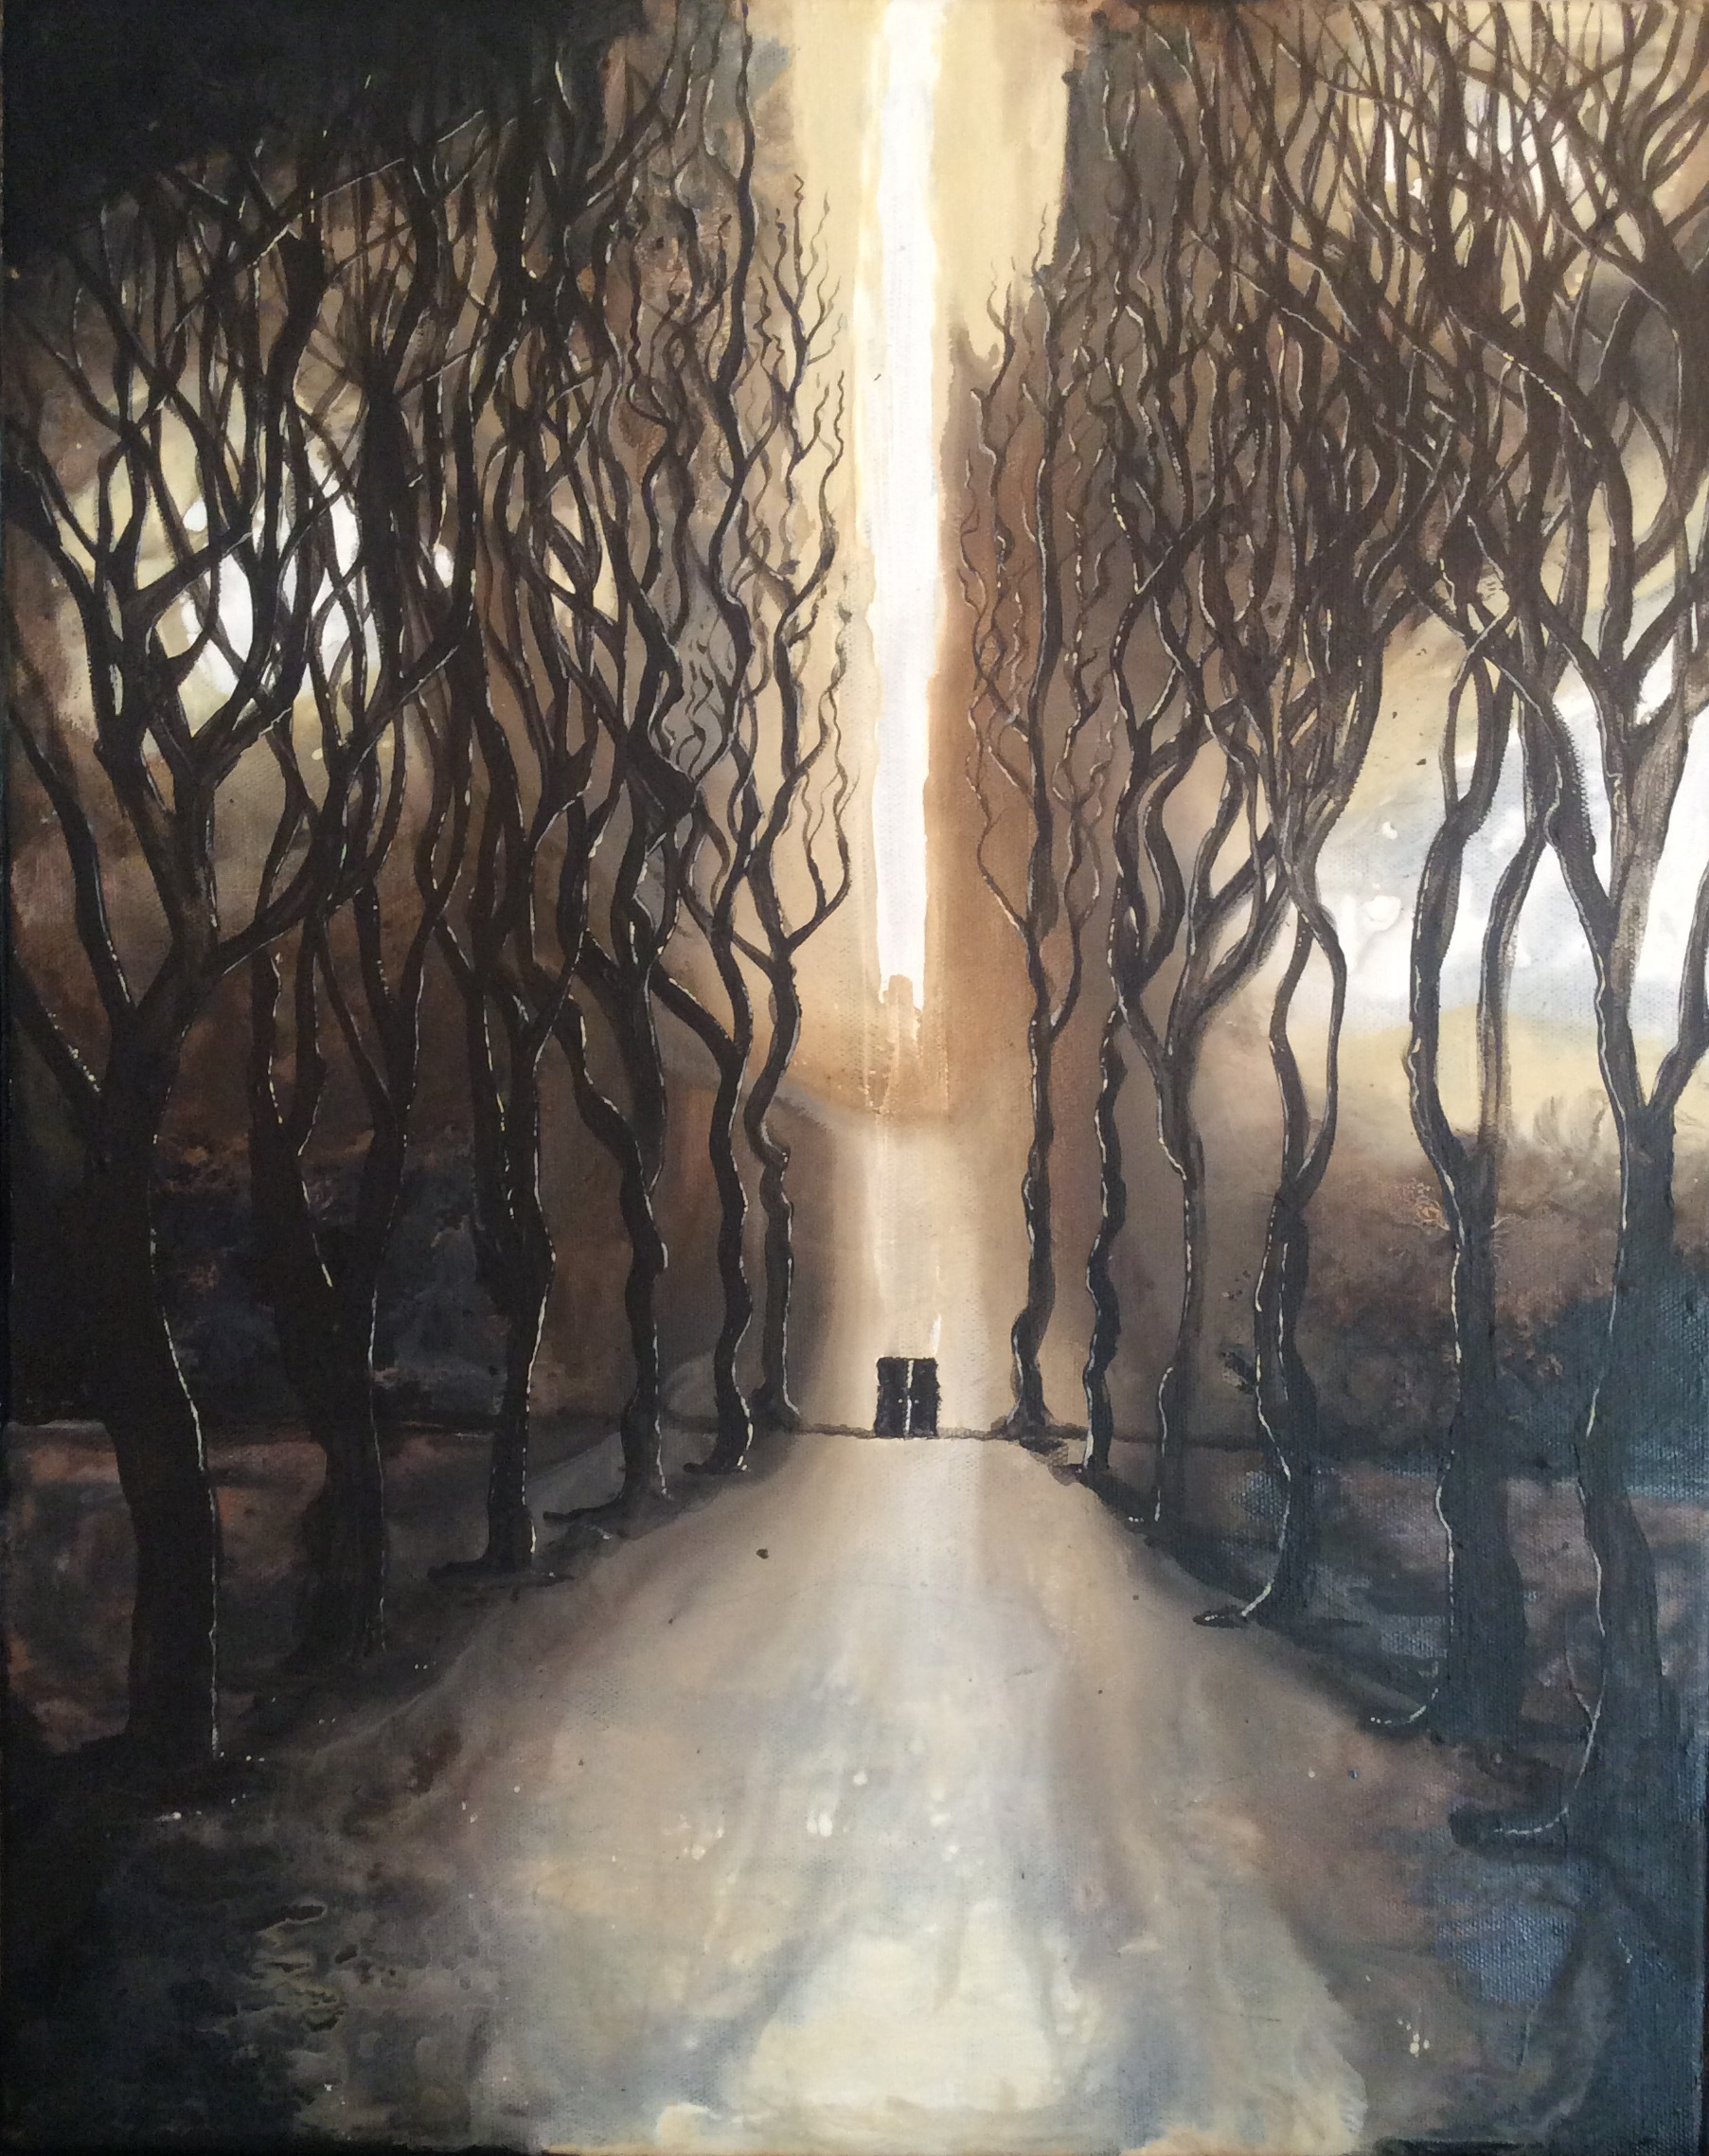 'The Corridor' - J Edward Neill - 2019